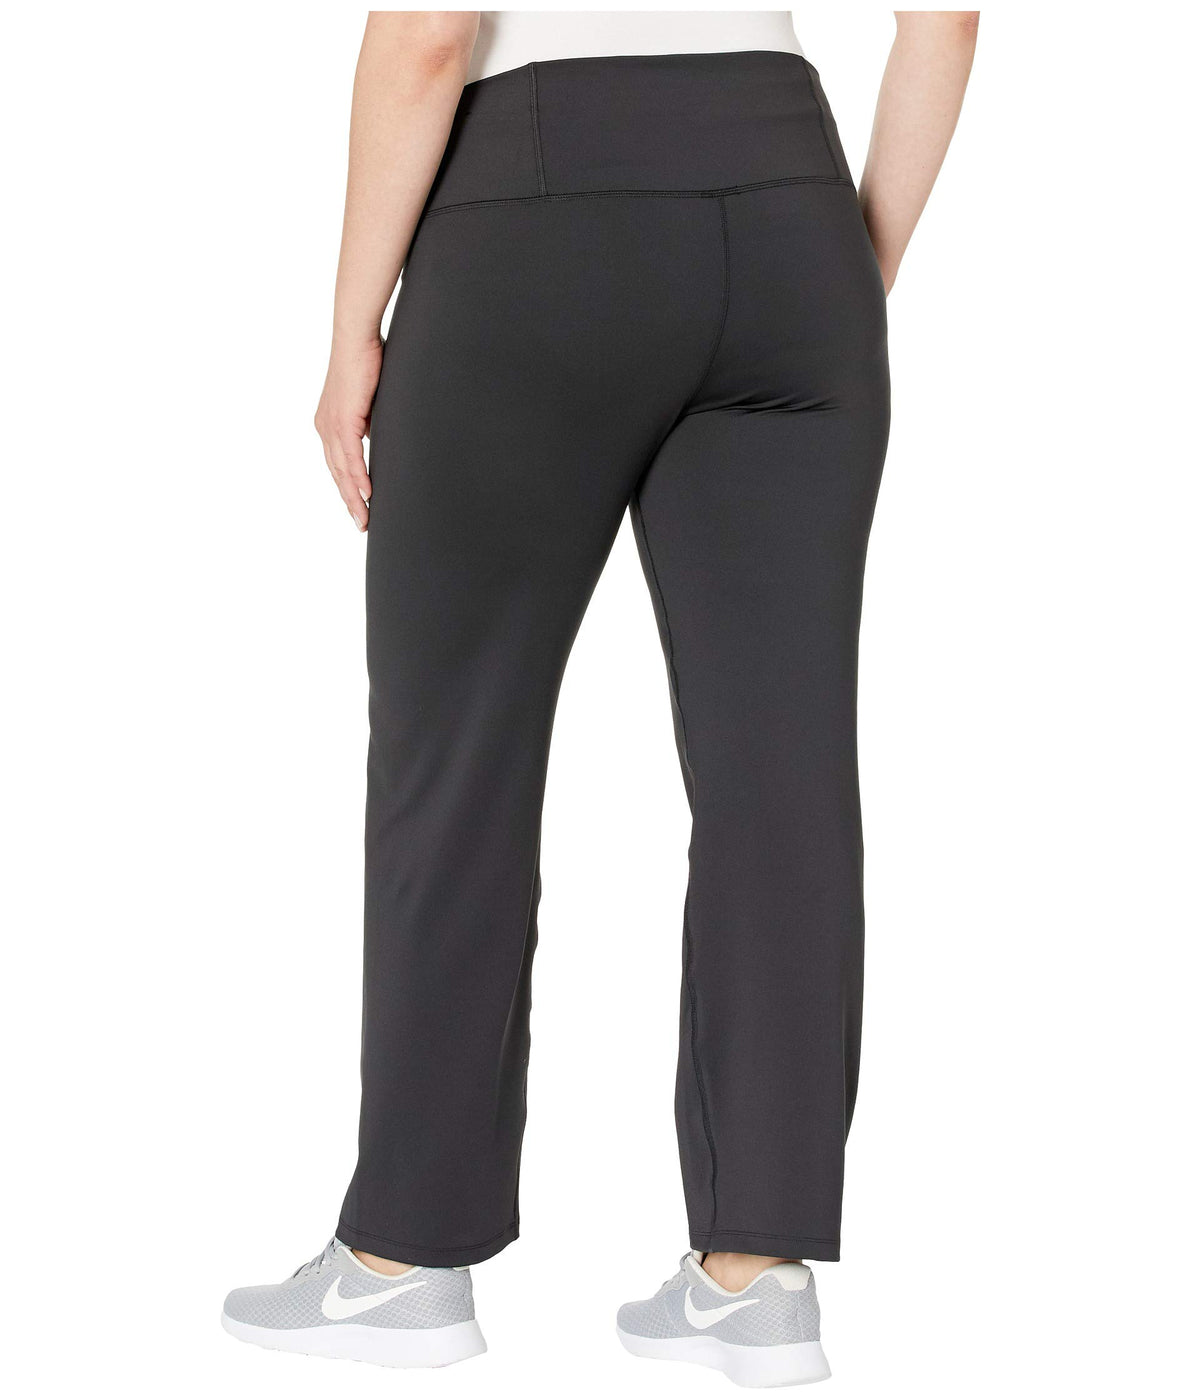 Power Classic Gym Pants (Sizes 1X-3X)